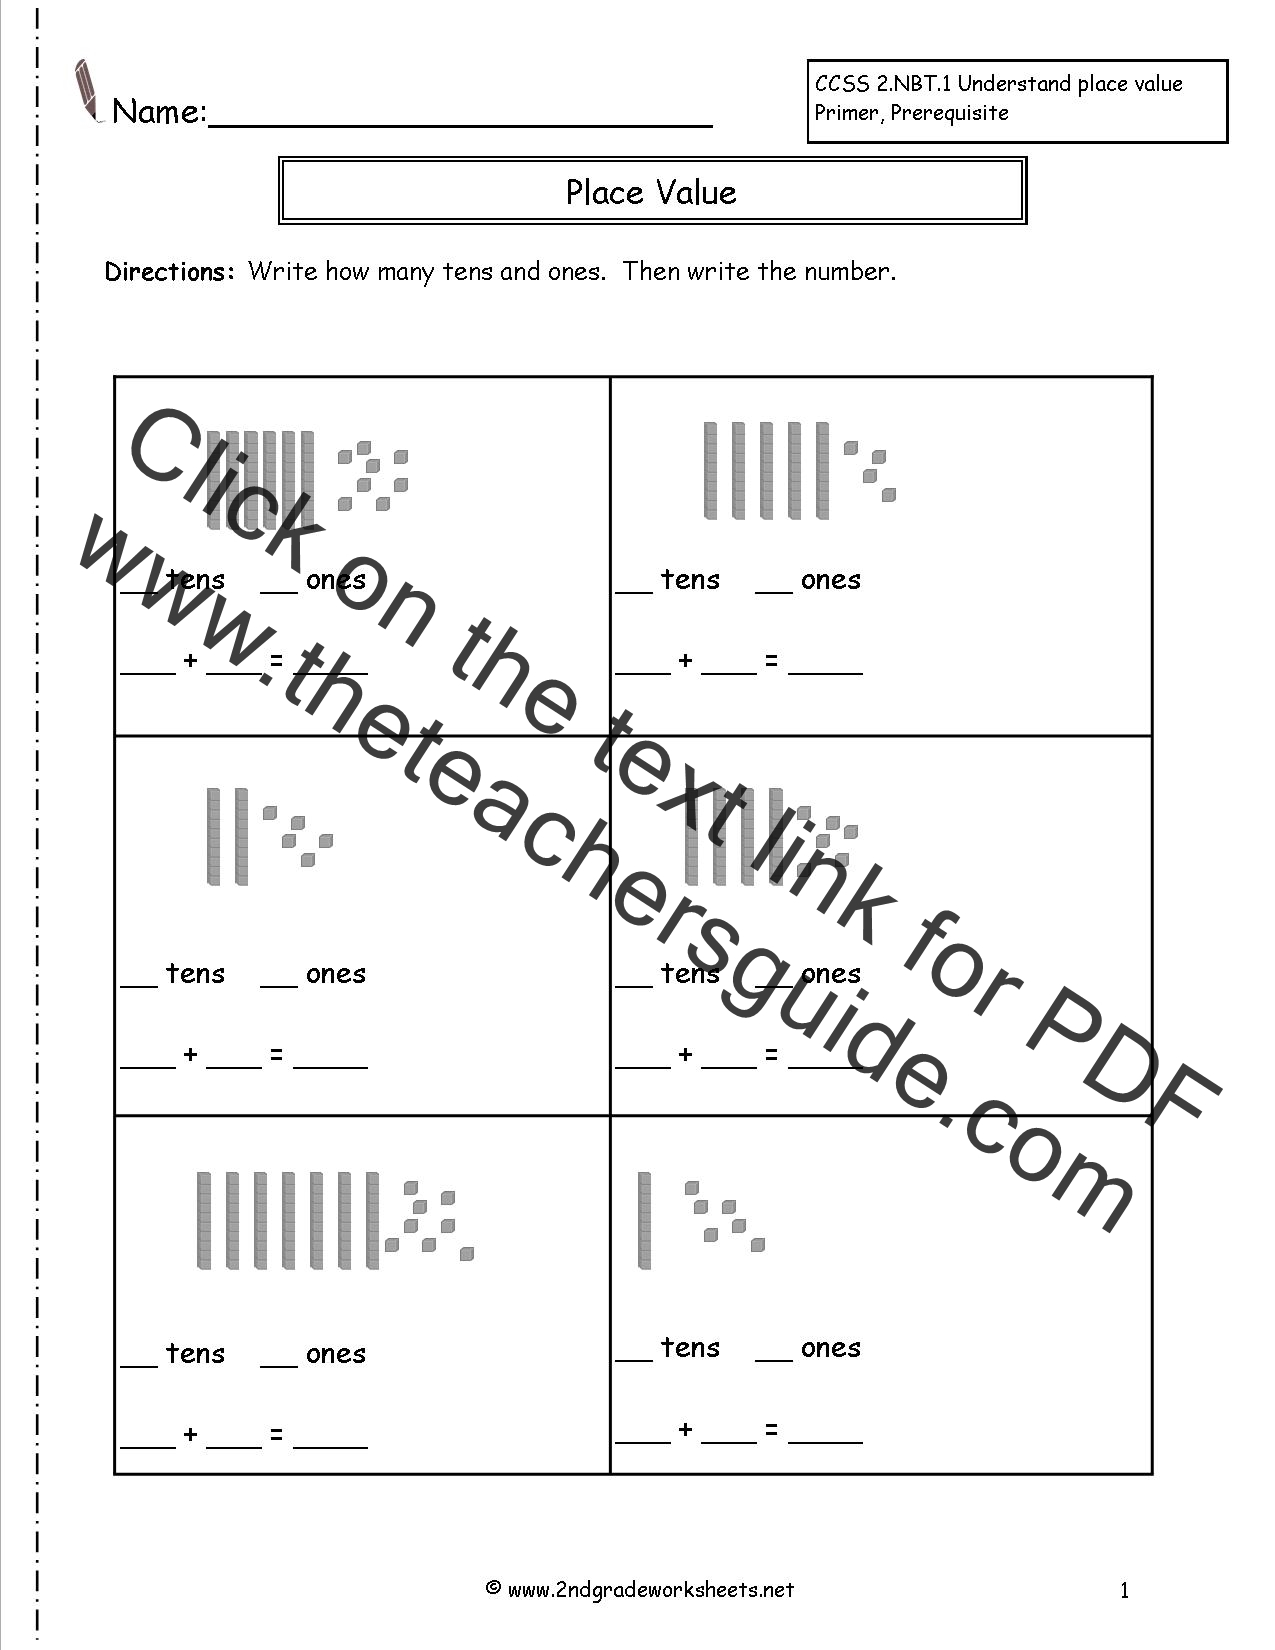 Second Grade Place Value Worksheets – Place Value Worksheets for Kindergarten